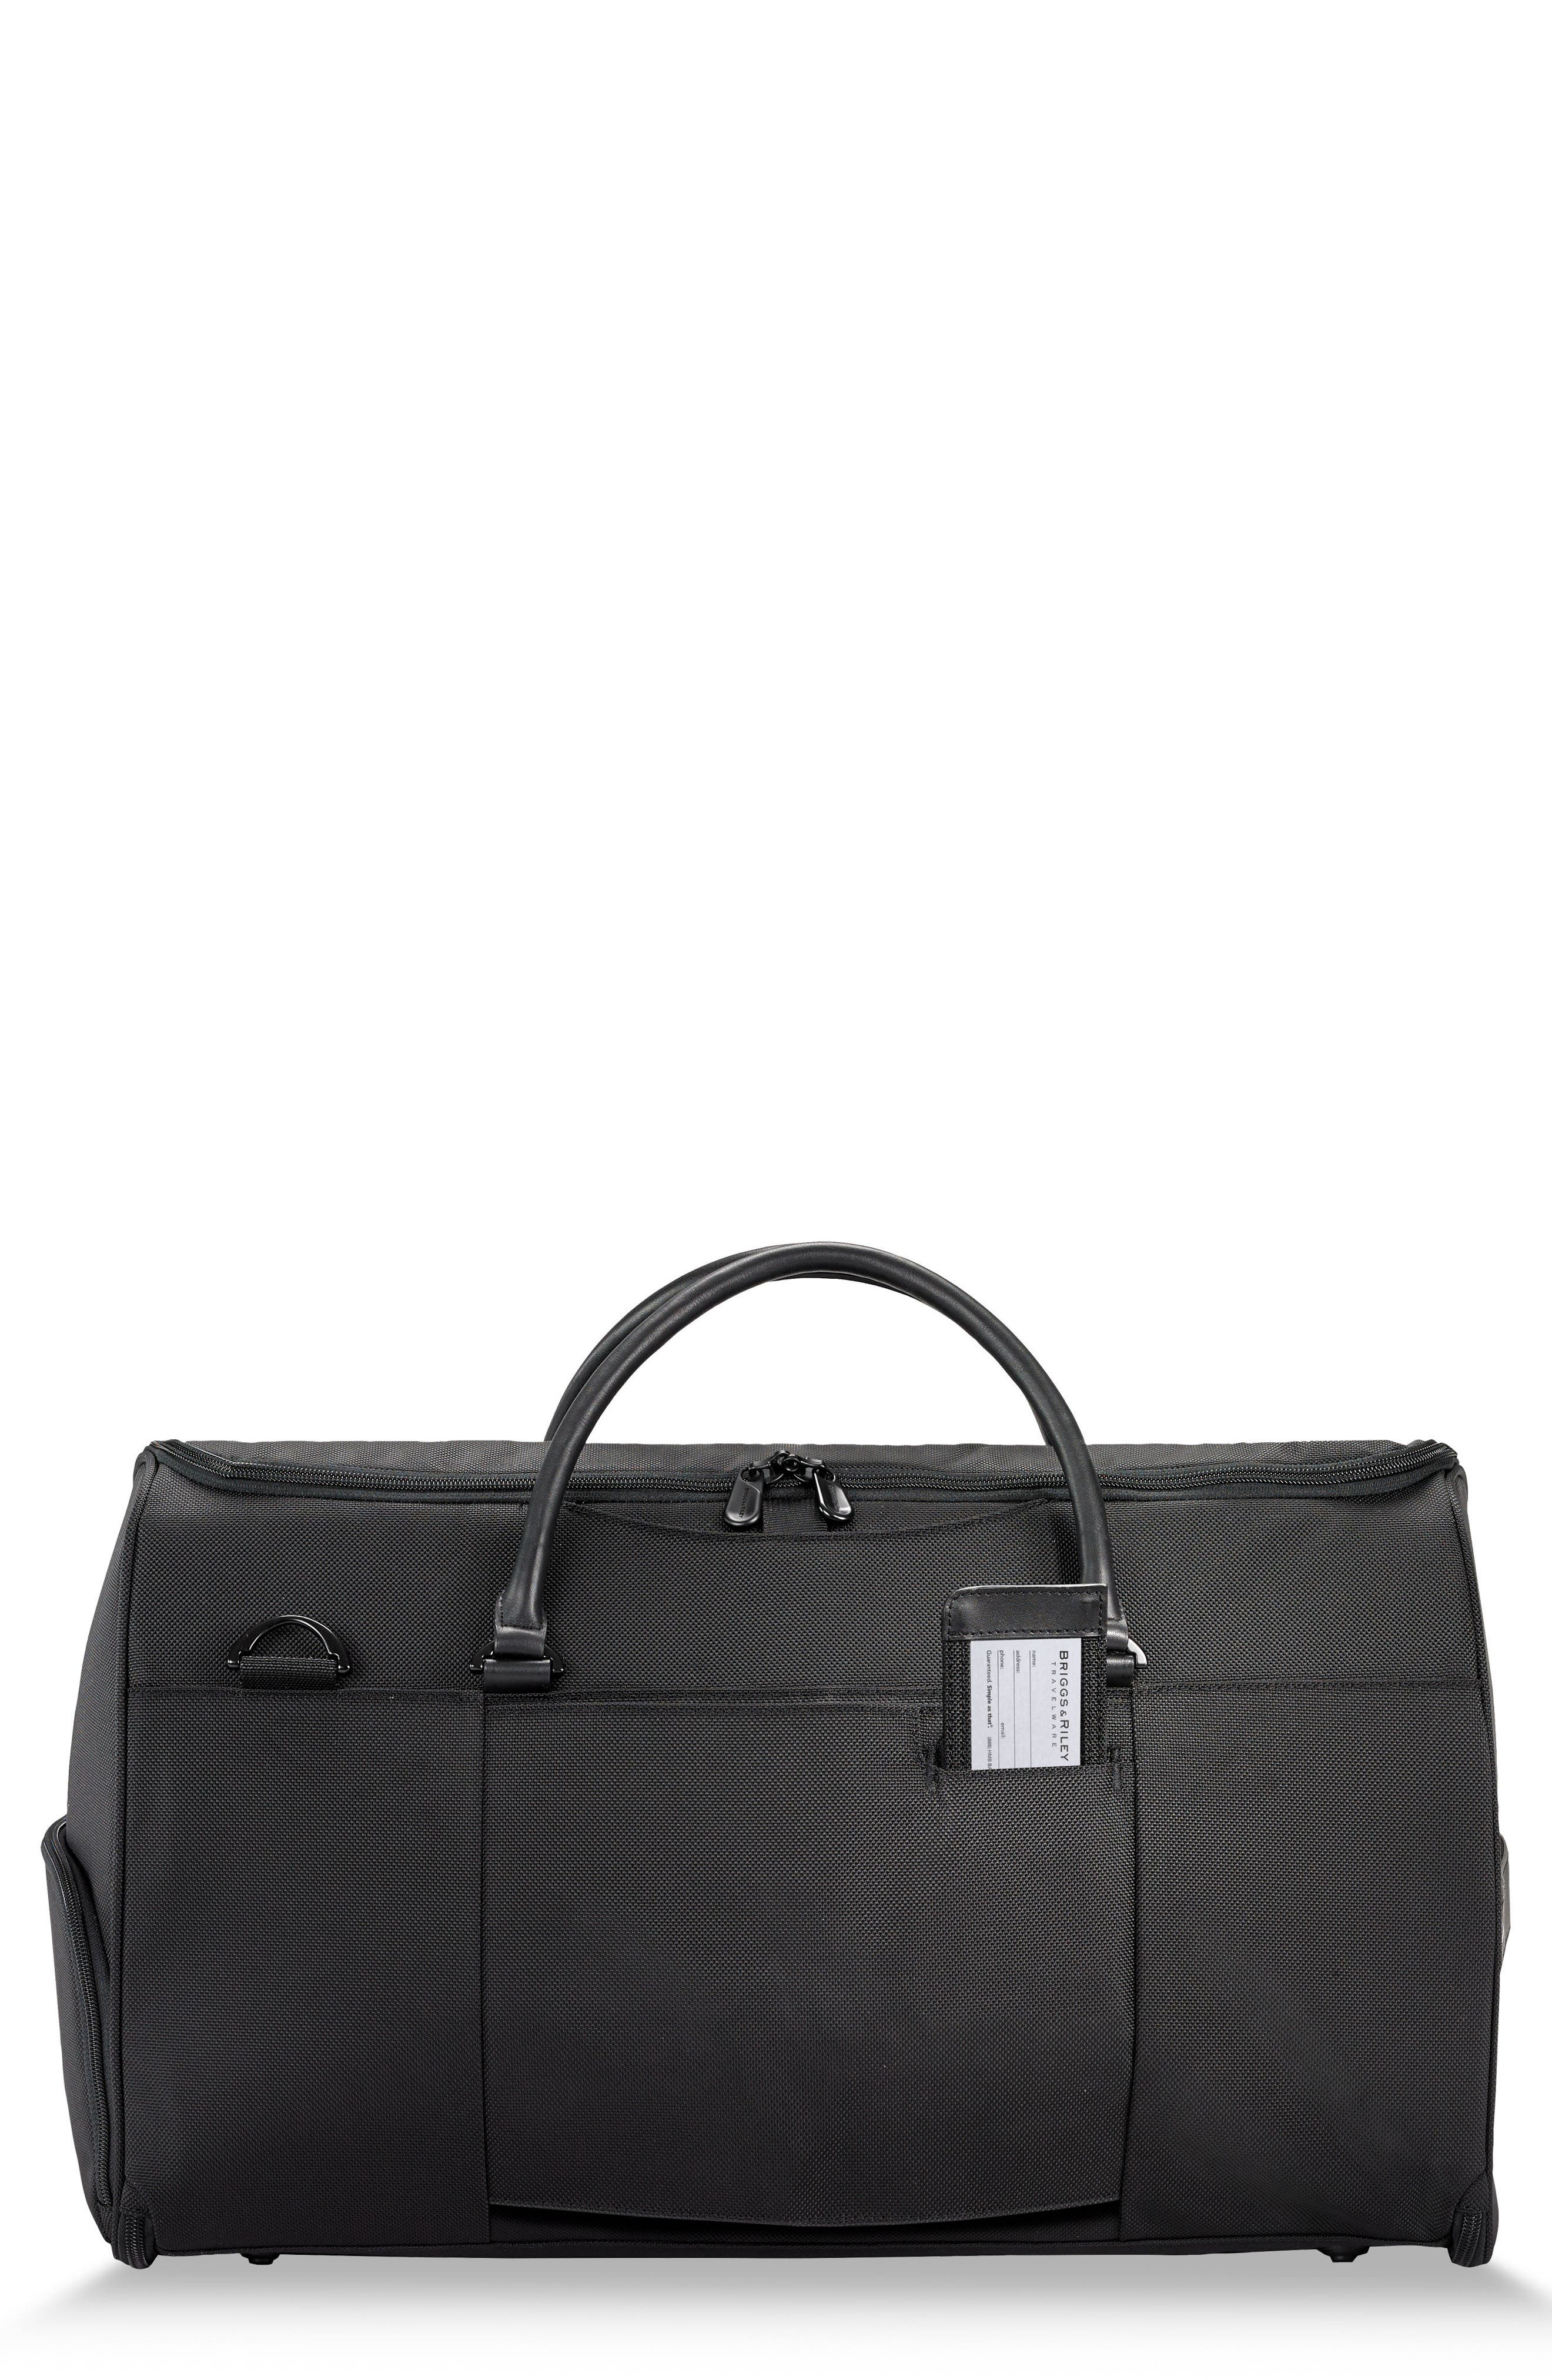 BRIGGS & RILEY Baseline Suiter Duffle Bag, Main, color, BLACK